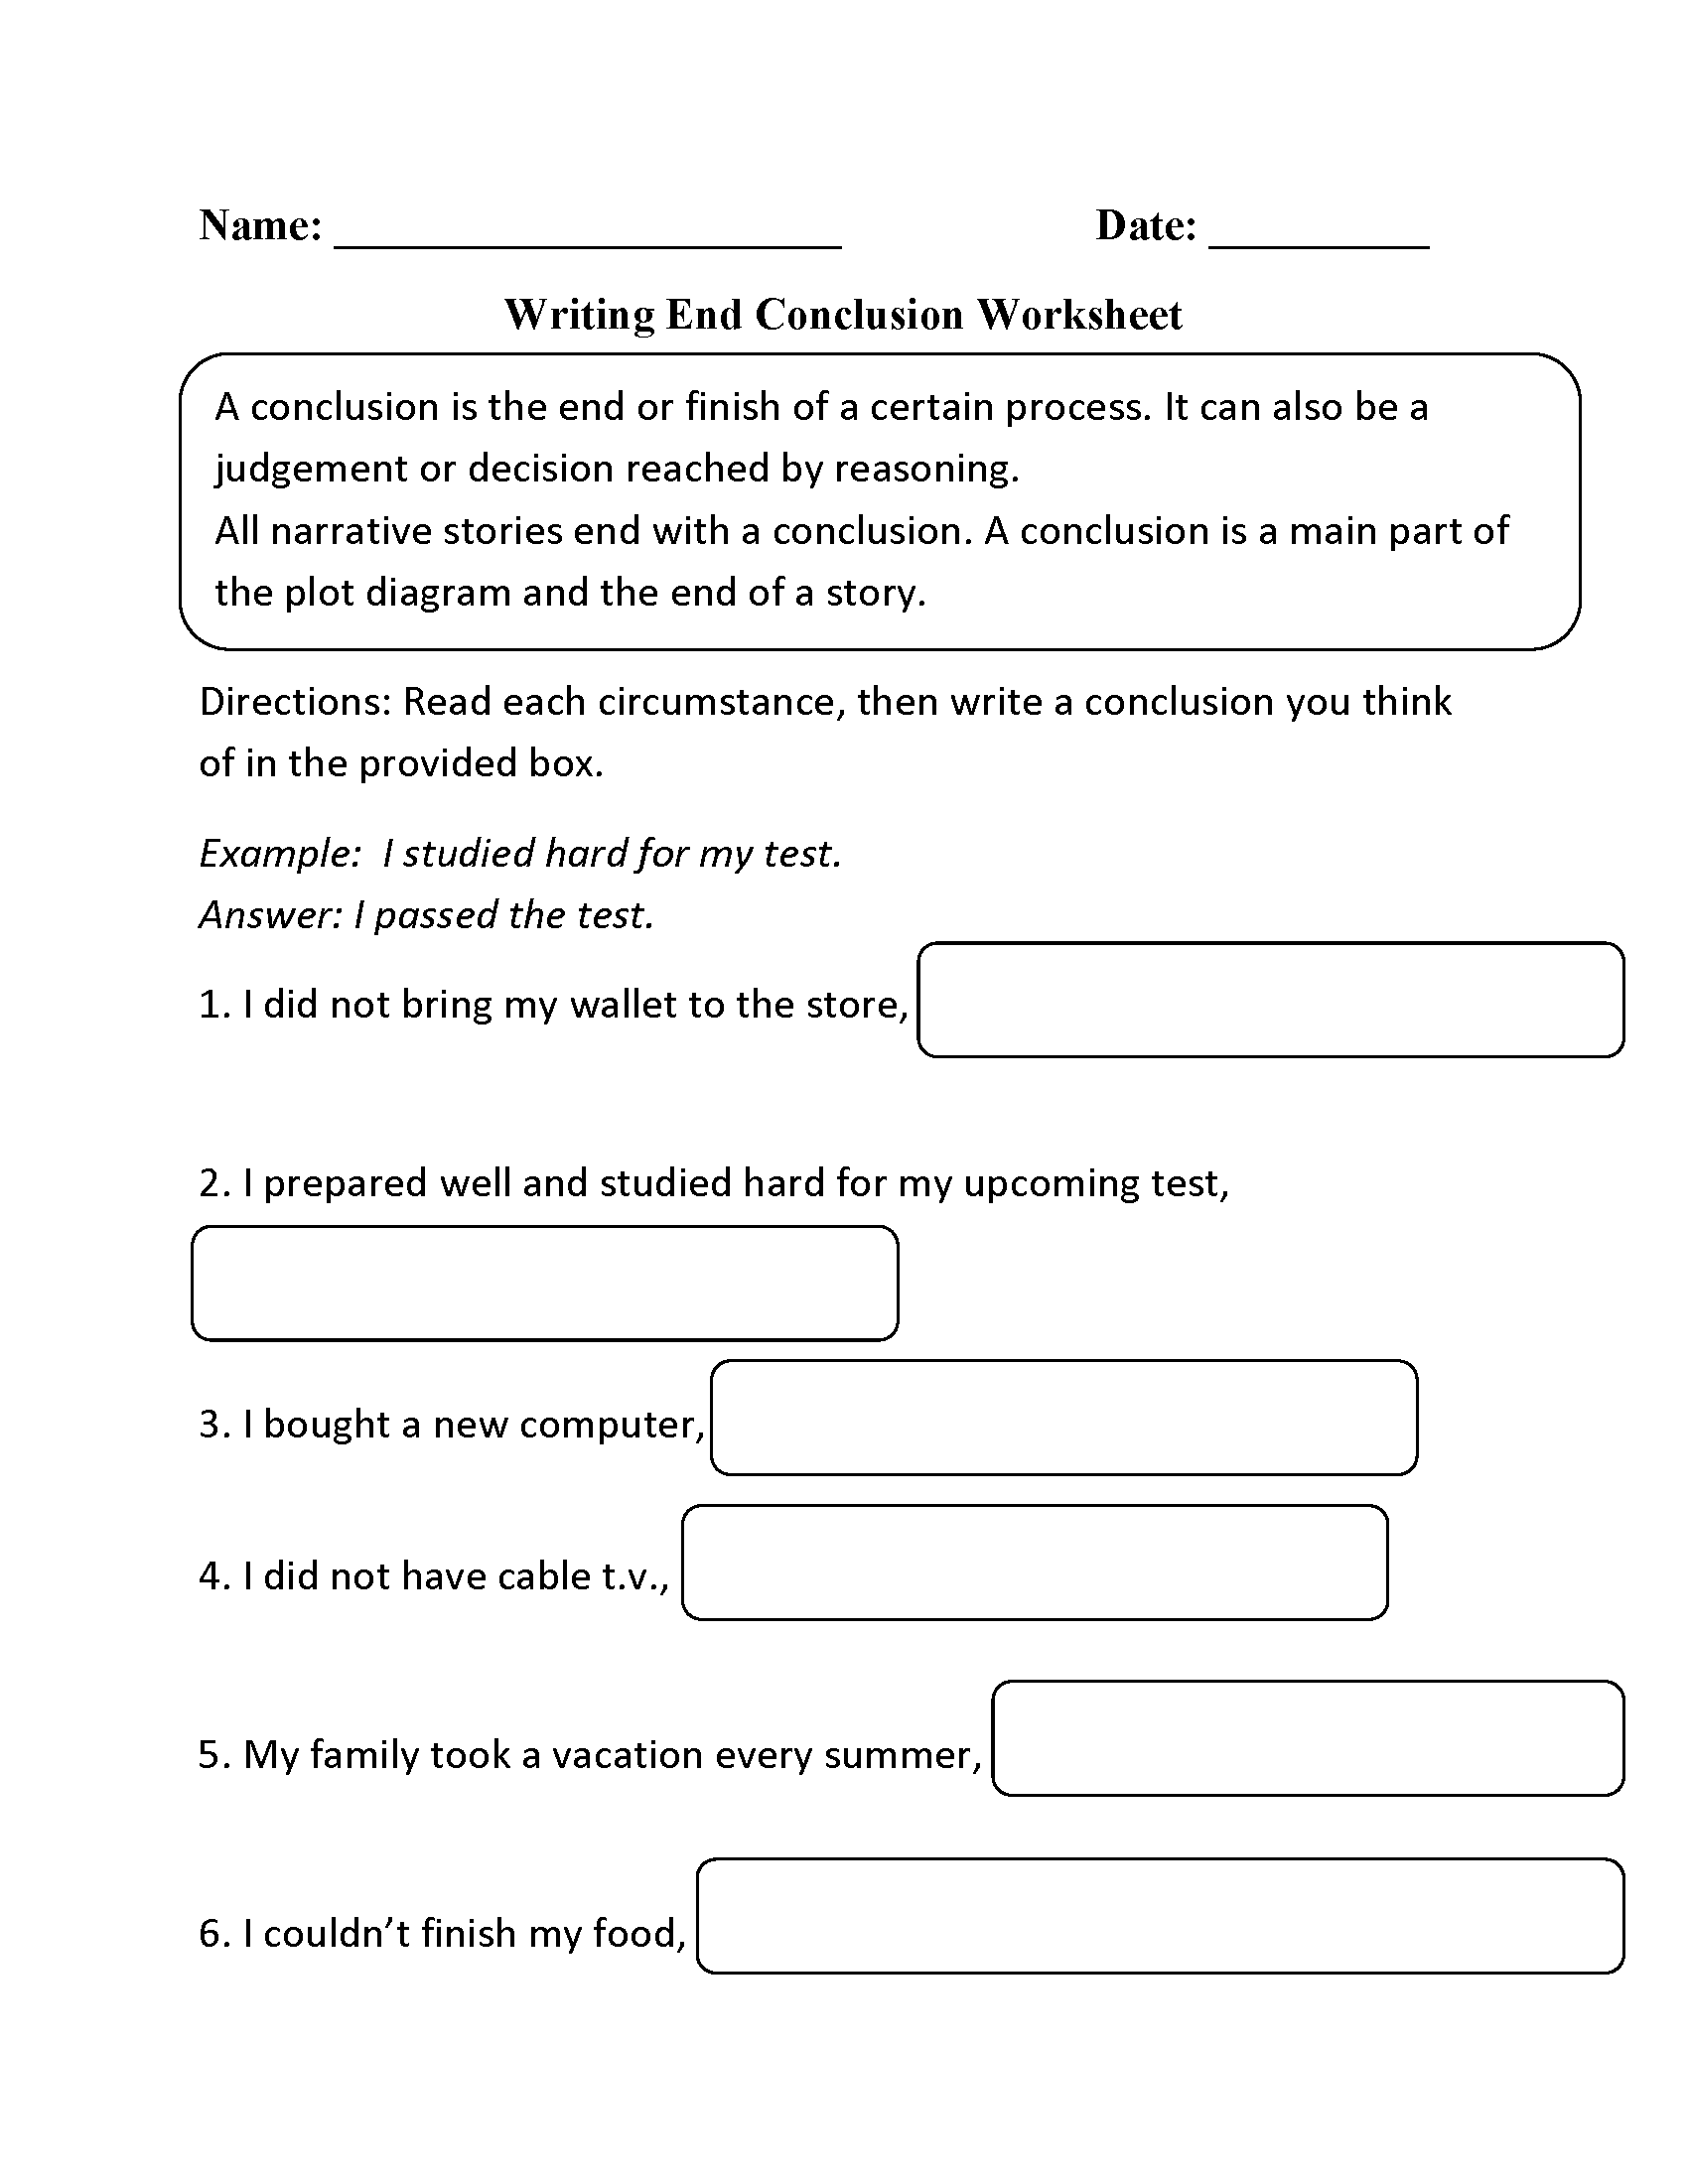 Writing Conclusions Worksheets